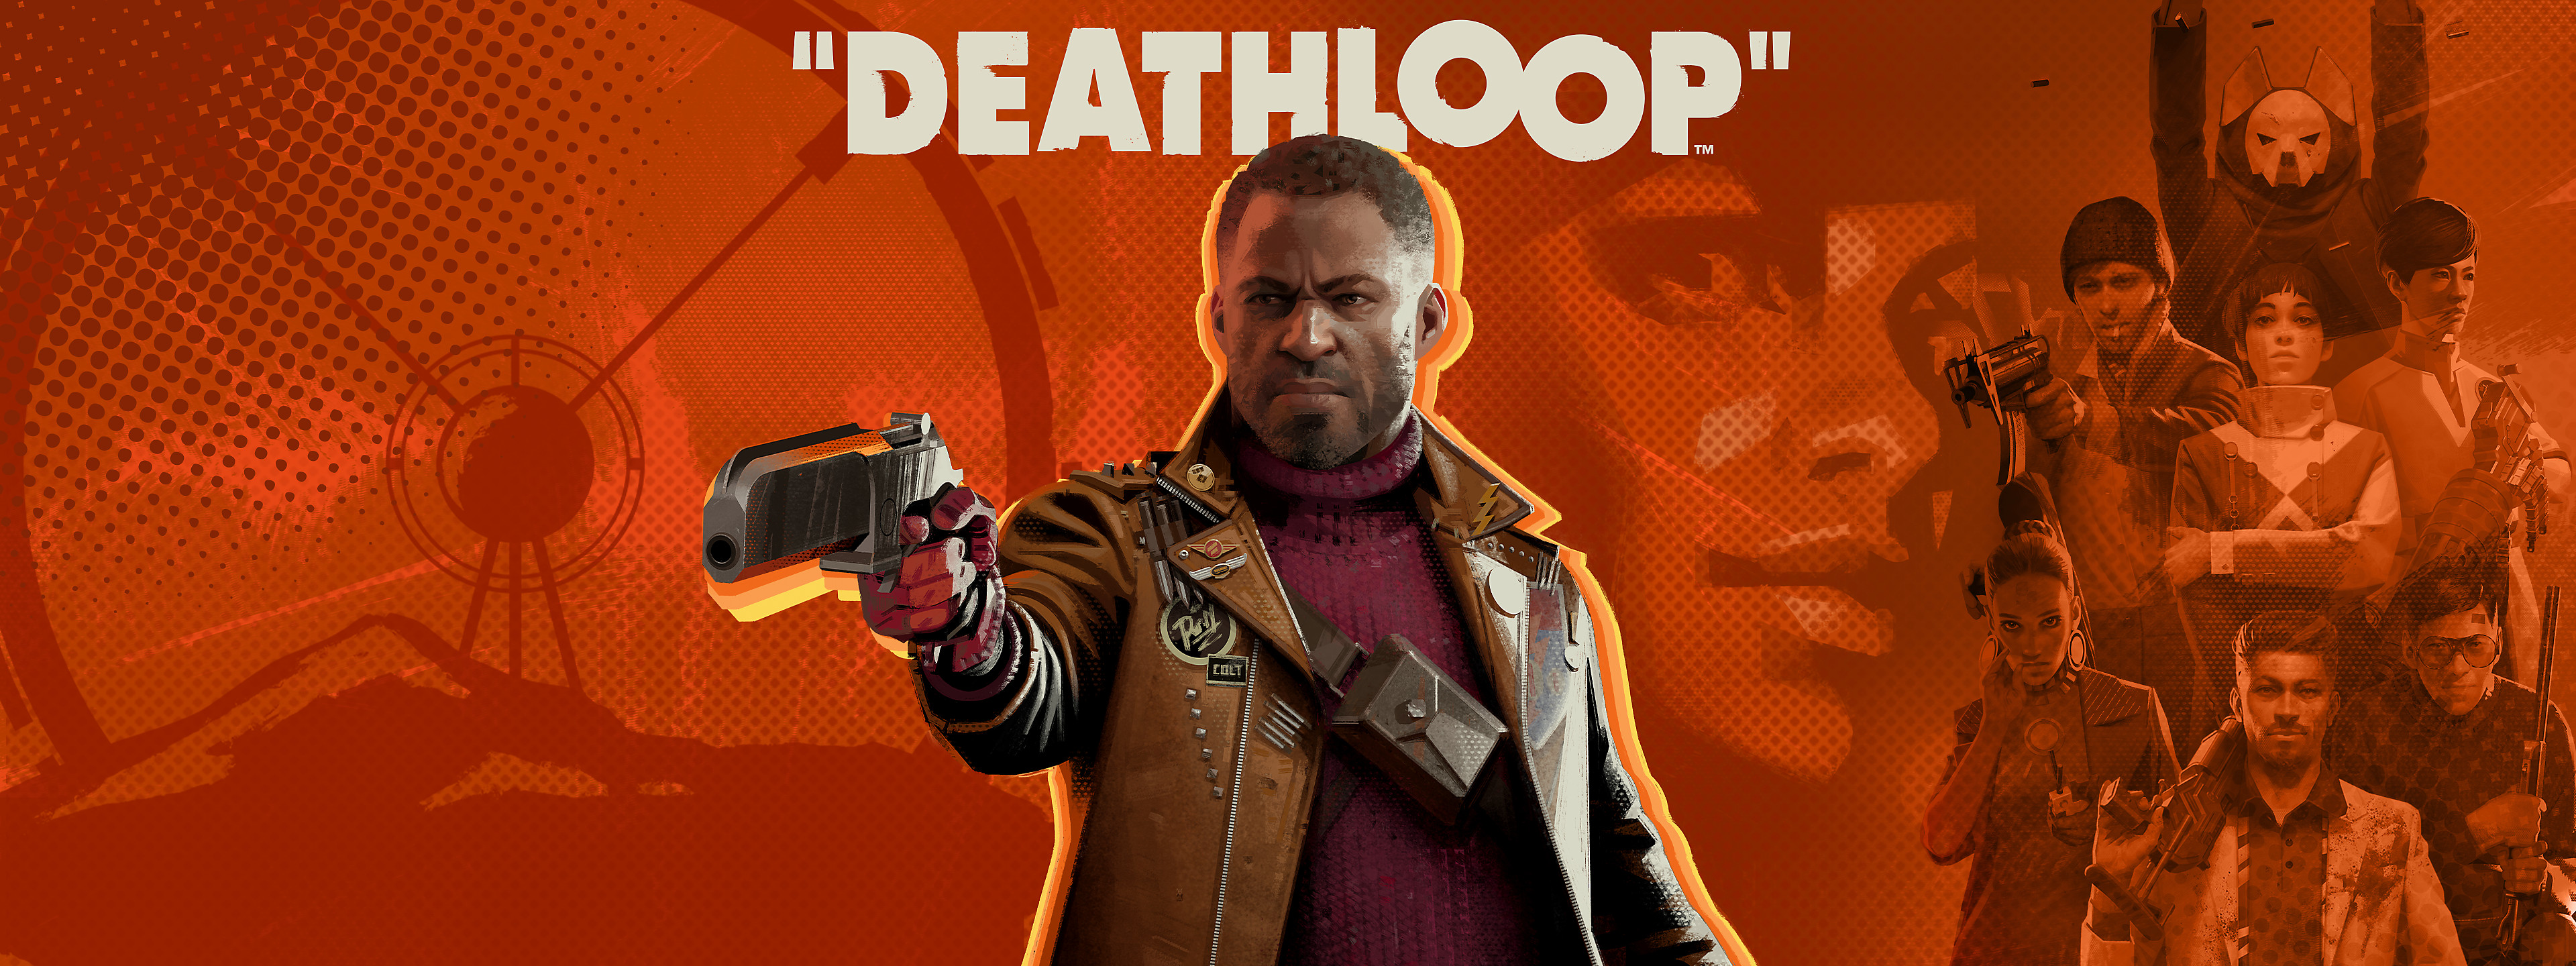 Deathloop - Pre-Orders Now Available